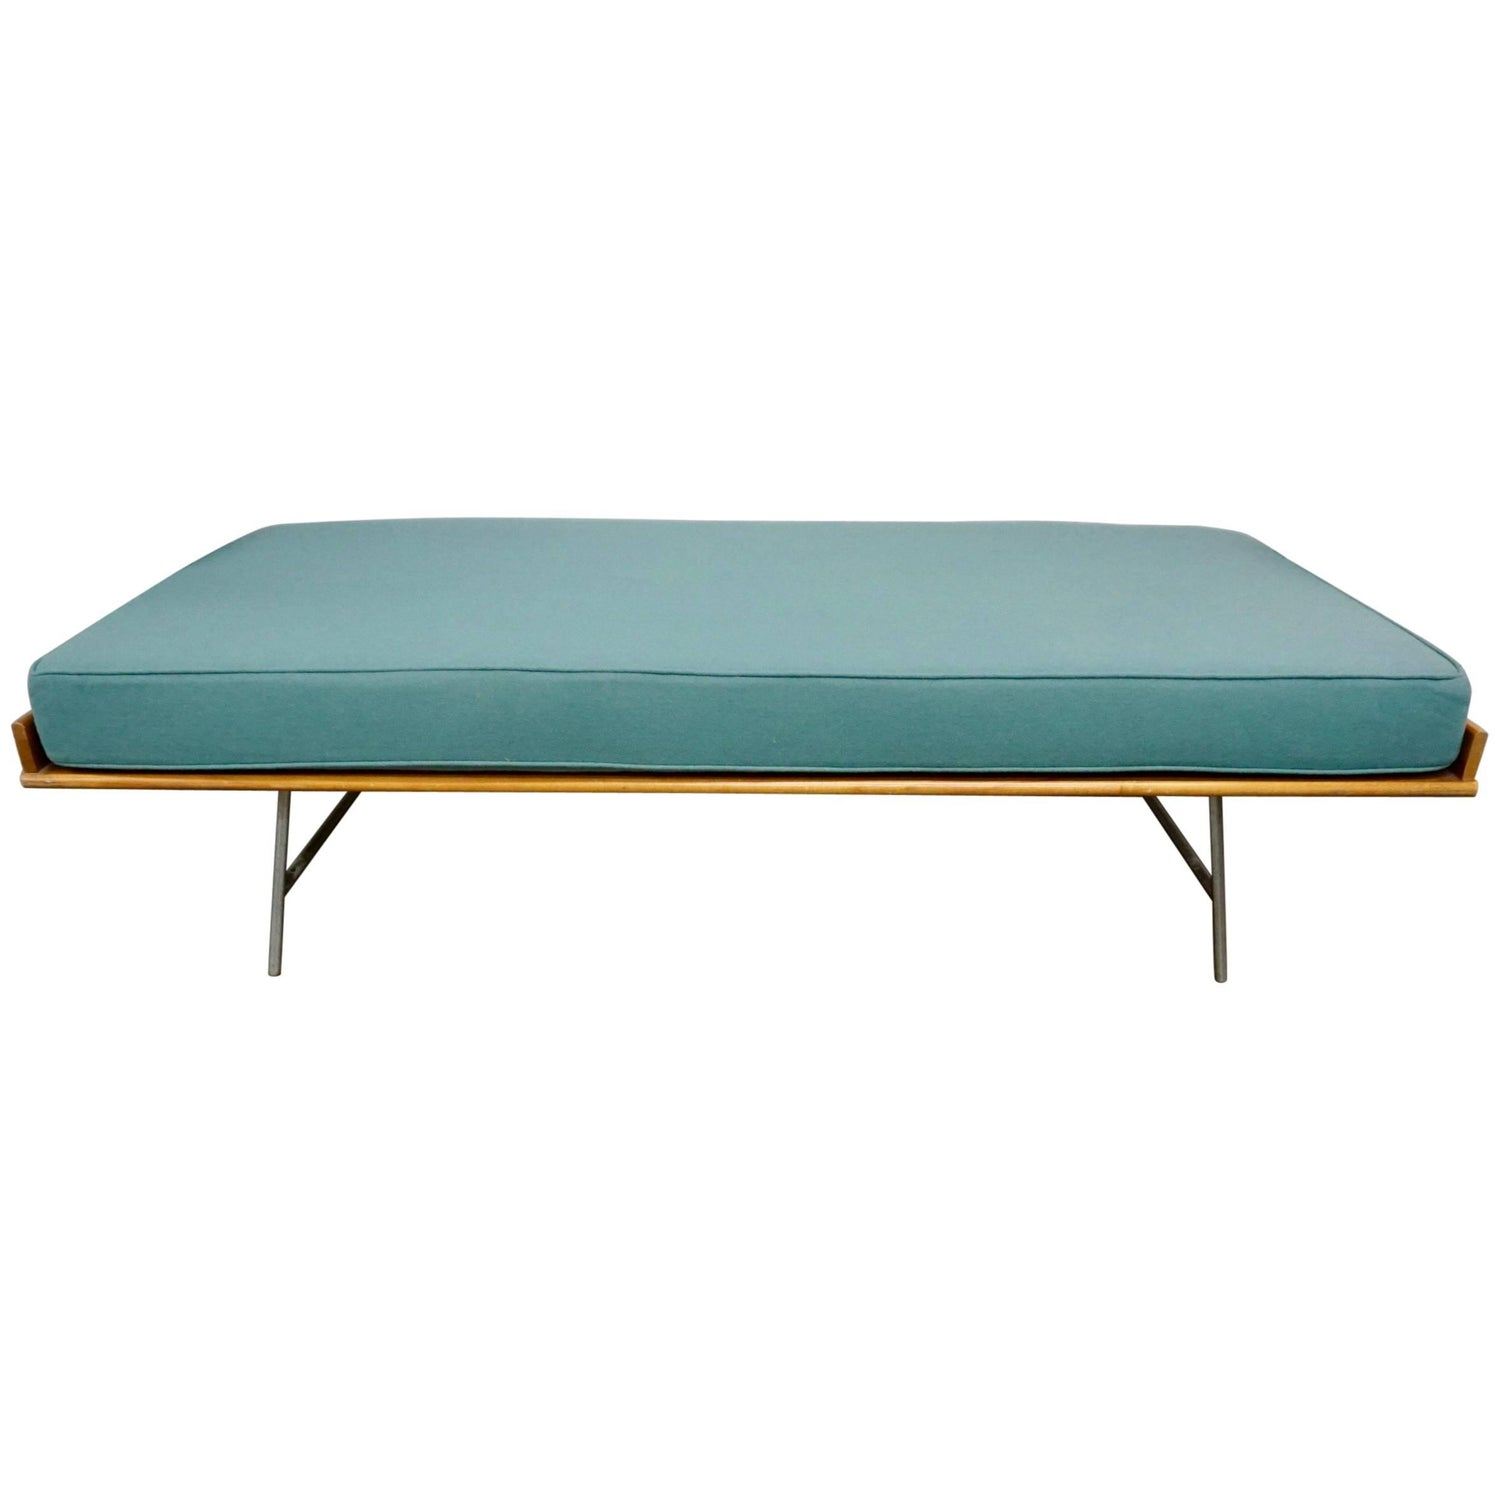 George Nelson Seating 108 For Sale At 1stdibs # Muebles George Nelson